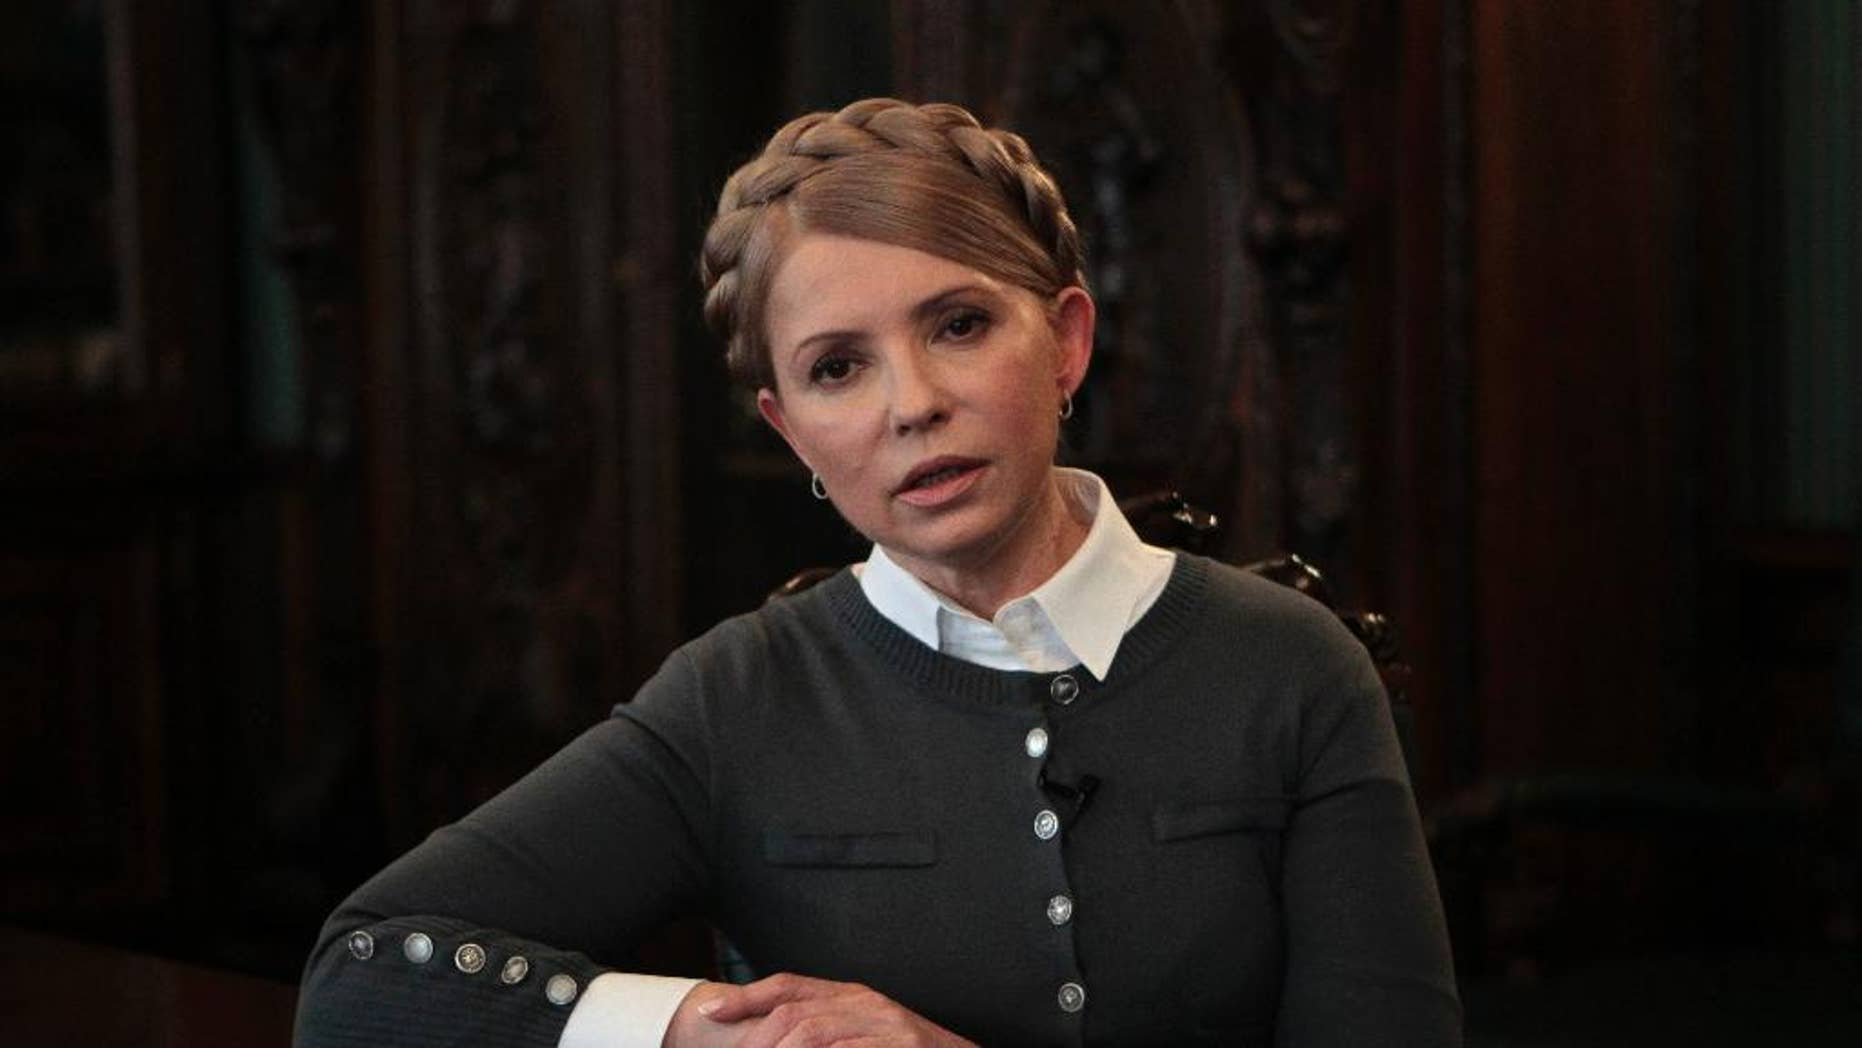 """Former Ukrainian Prime Minister and candidate for the upcoming presidential elections Yulia Tymoshenko speaks during an interview with The Associated Press in Kiev, Ukraine, Saturday, April 26, 2014. Tymoshenko says Ukraine """"must be a member of NATO"""" in order to protect itself from Russian aggression. While Tymoshenko has not previously backed NATO membership publicly, she and other Ukrainian politicians have ramped up the tough rhetoric as pro-Russia militias seized police stations and government buildings across eastern Ukraine. (AP Photo/Sergei Chuzavkov)"""